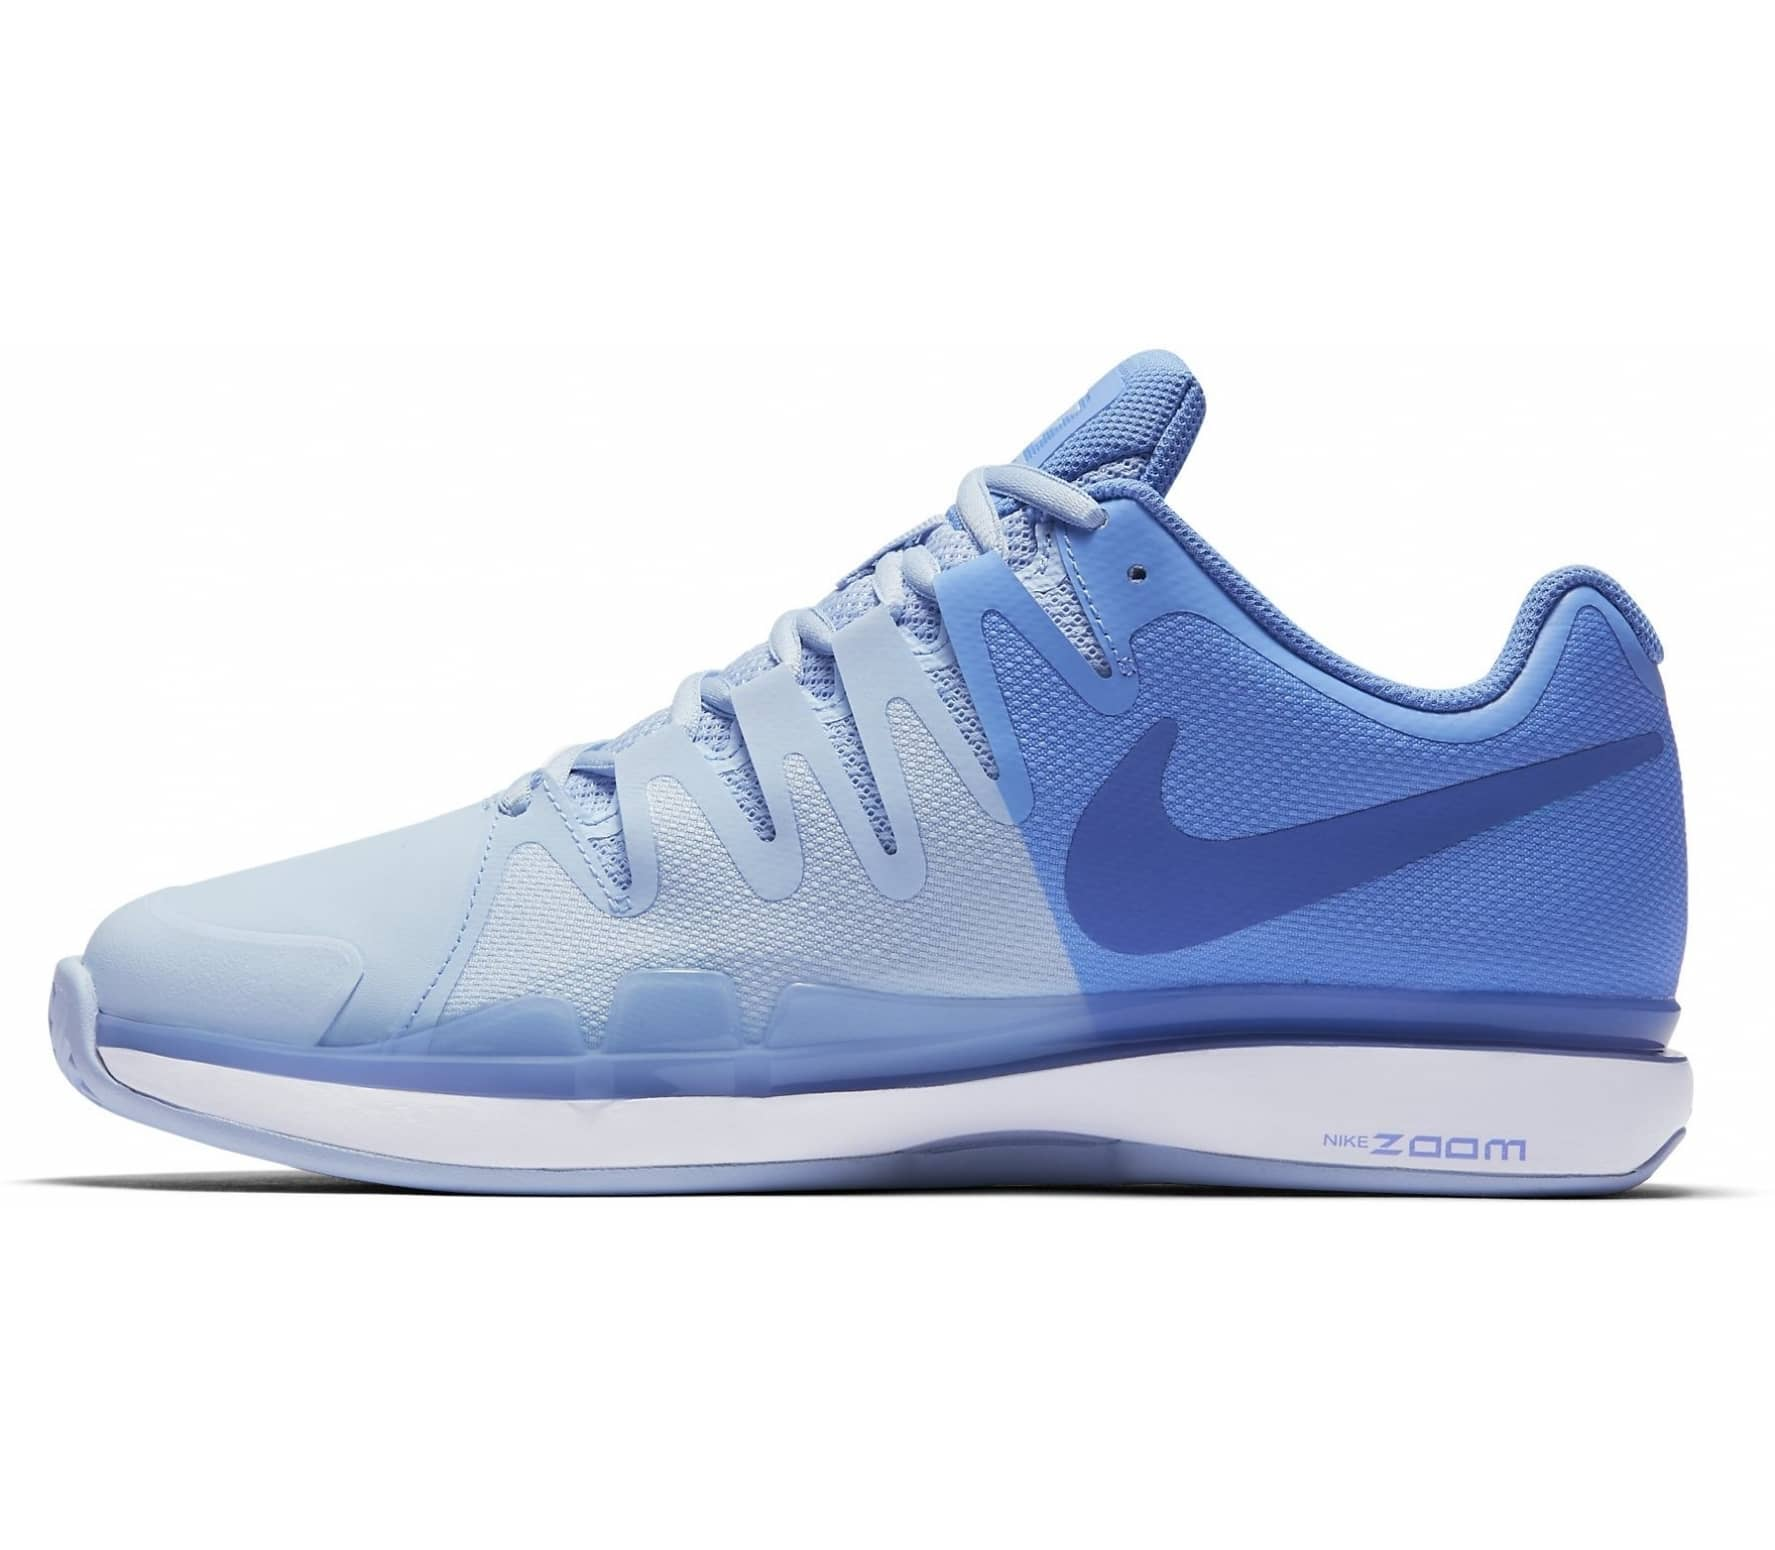 c1216215f84a4a Nike - Zoom Vapor 9.5 Tour Clay women s tennis shoes (blue white ...